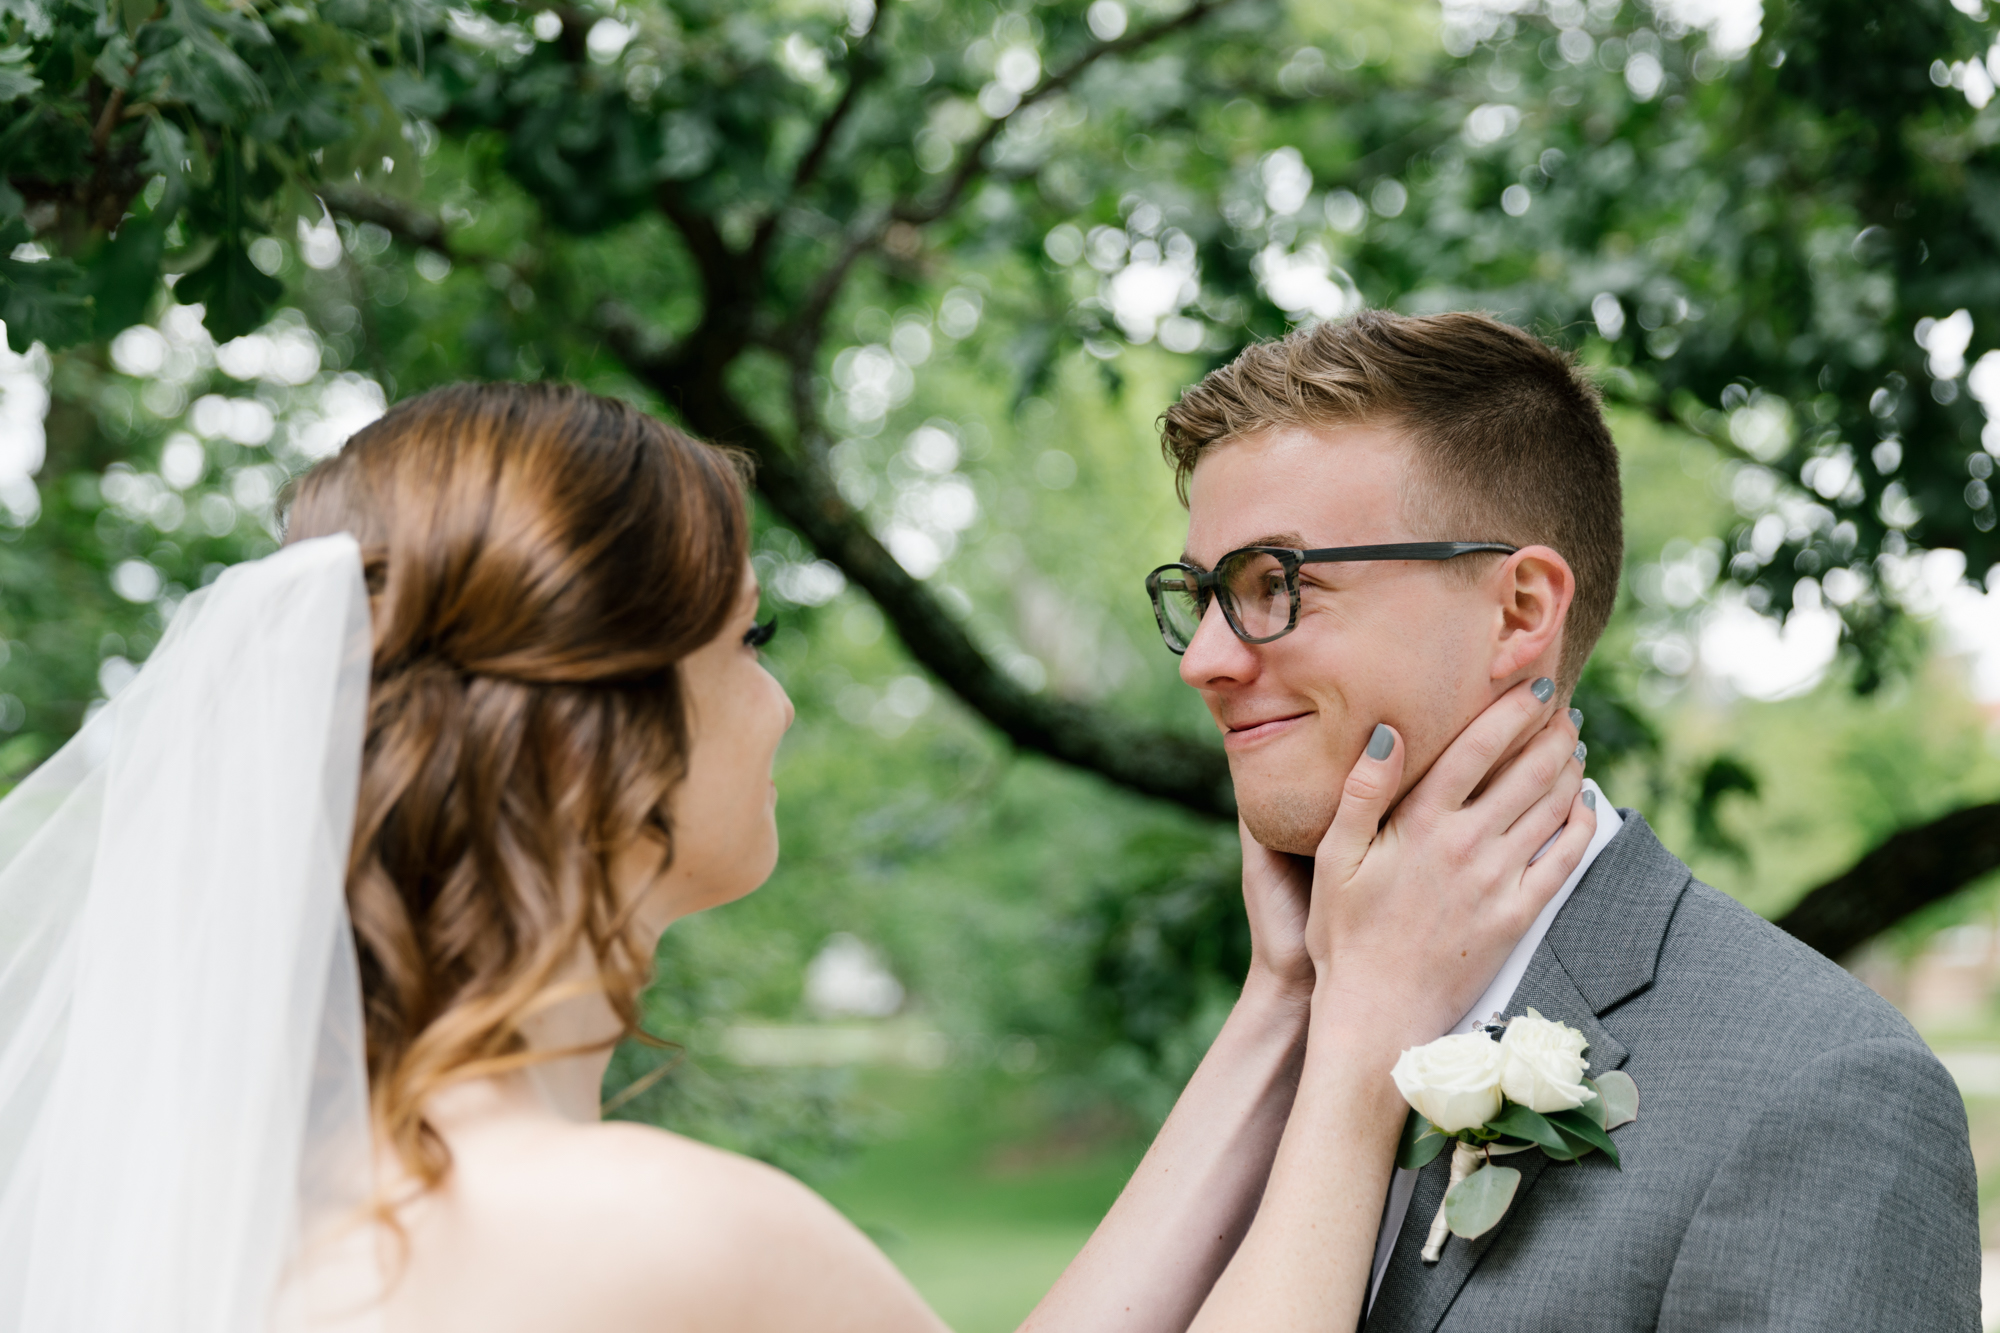 Photography from a couple's first look before their wedding at the Indiana Memorial Union at Indiana University in Bloomington, Indiana.